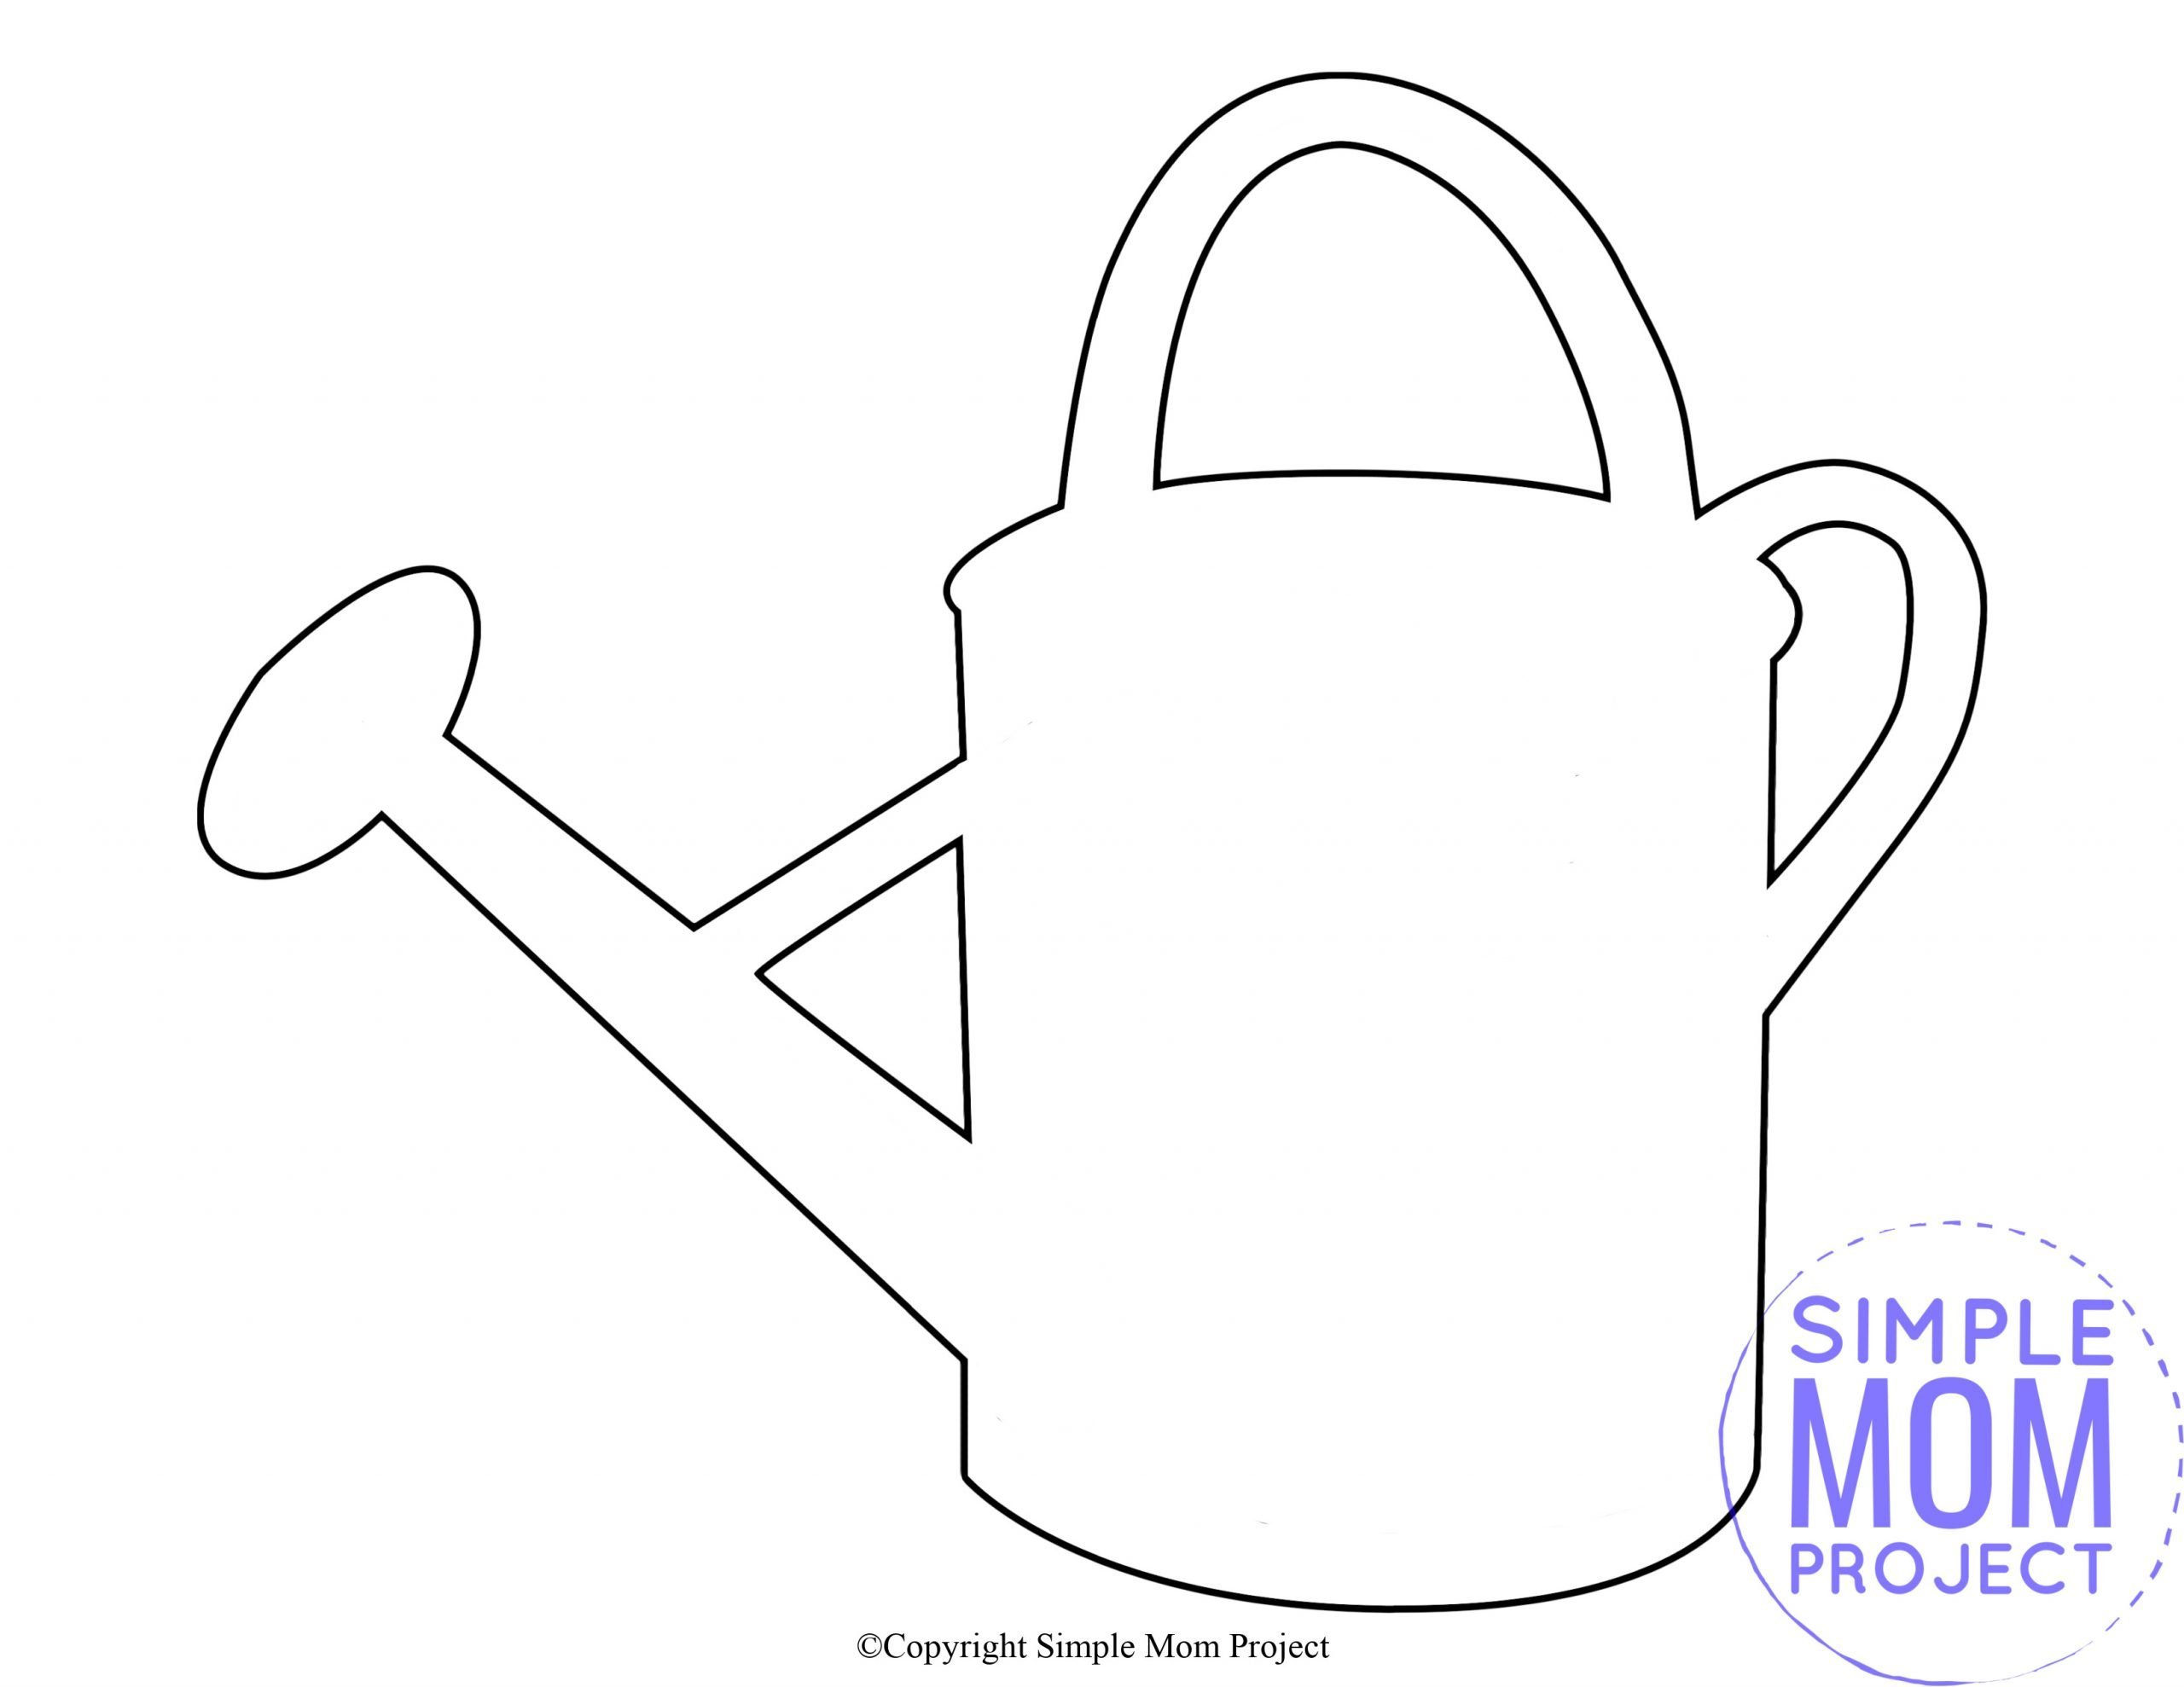 Free Printable Spring and Summer Watering Bucket Pail template silhouette for kids preschoolers and toddlers